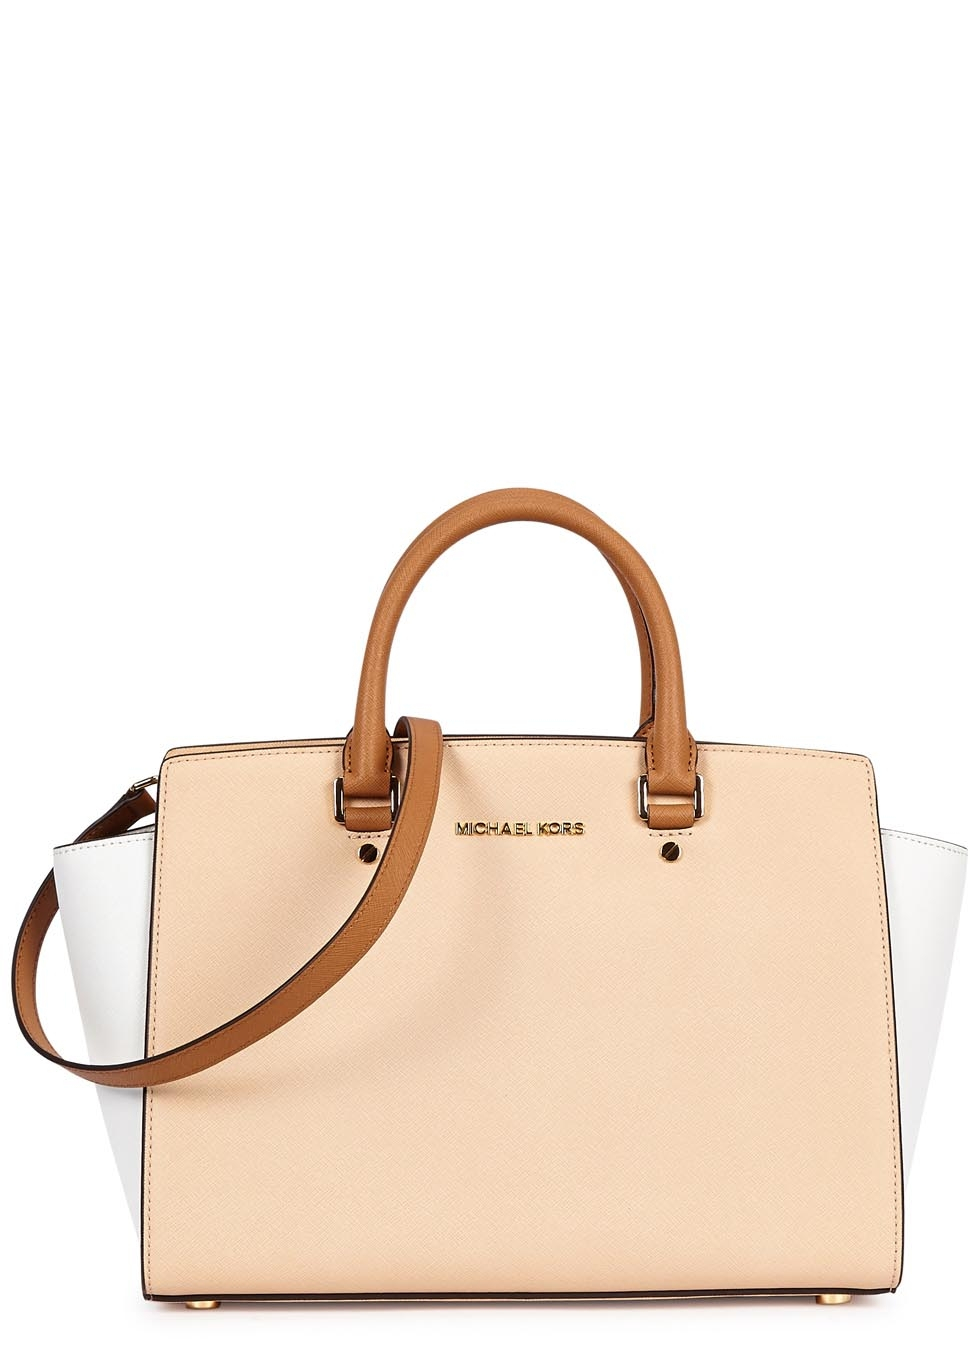 0ac5e39af869 Michael Kors Selma Large Peach Saffiano Leather Tote in White - Lyst